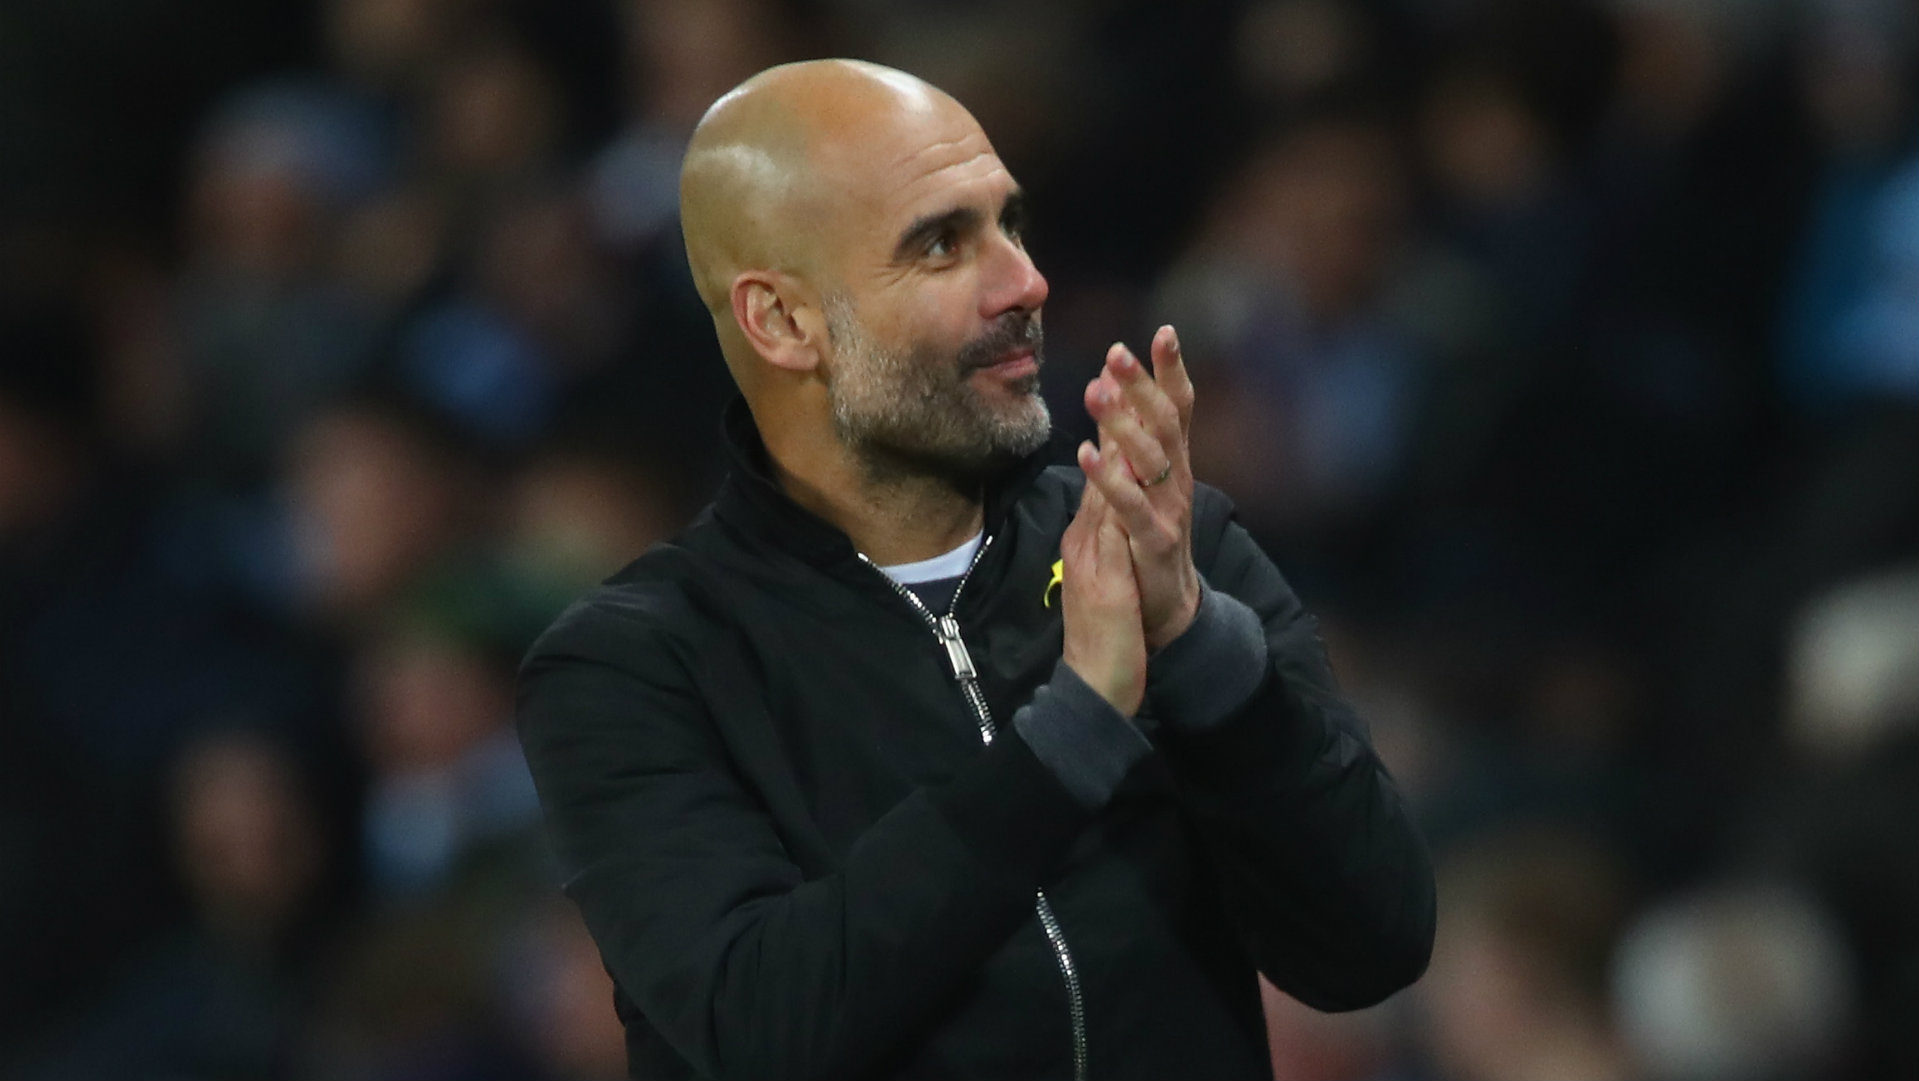 Man City boss Guardiola named Premier League Manager of the Month for third time in a row